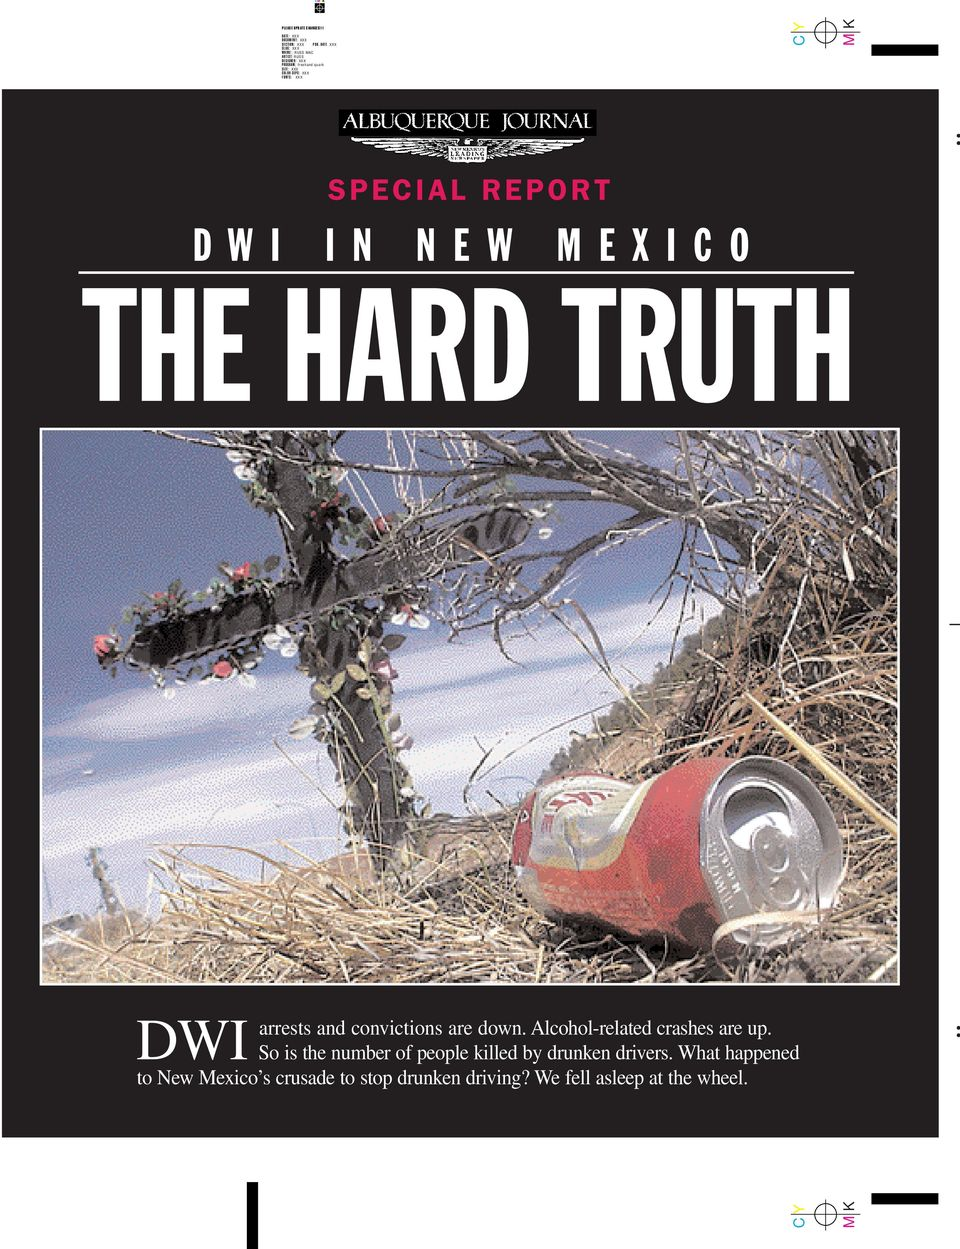 FONTS: XXX SPECIAL REPORT D WI IN NEW MEXICO THE HARD TRUTH DWI arrests and convictions are down.